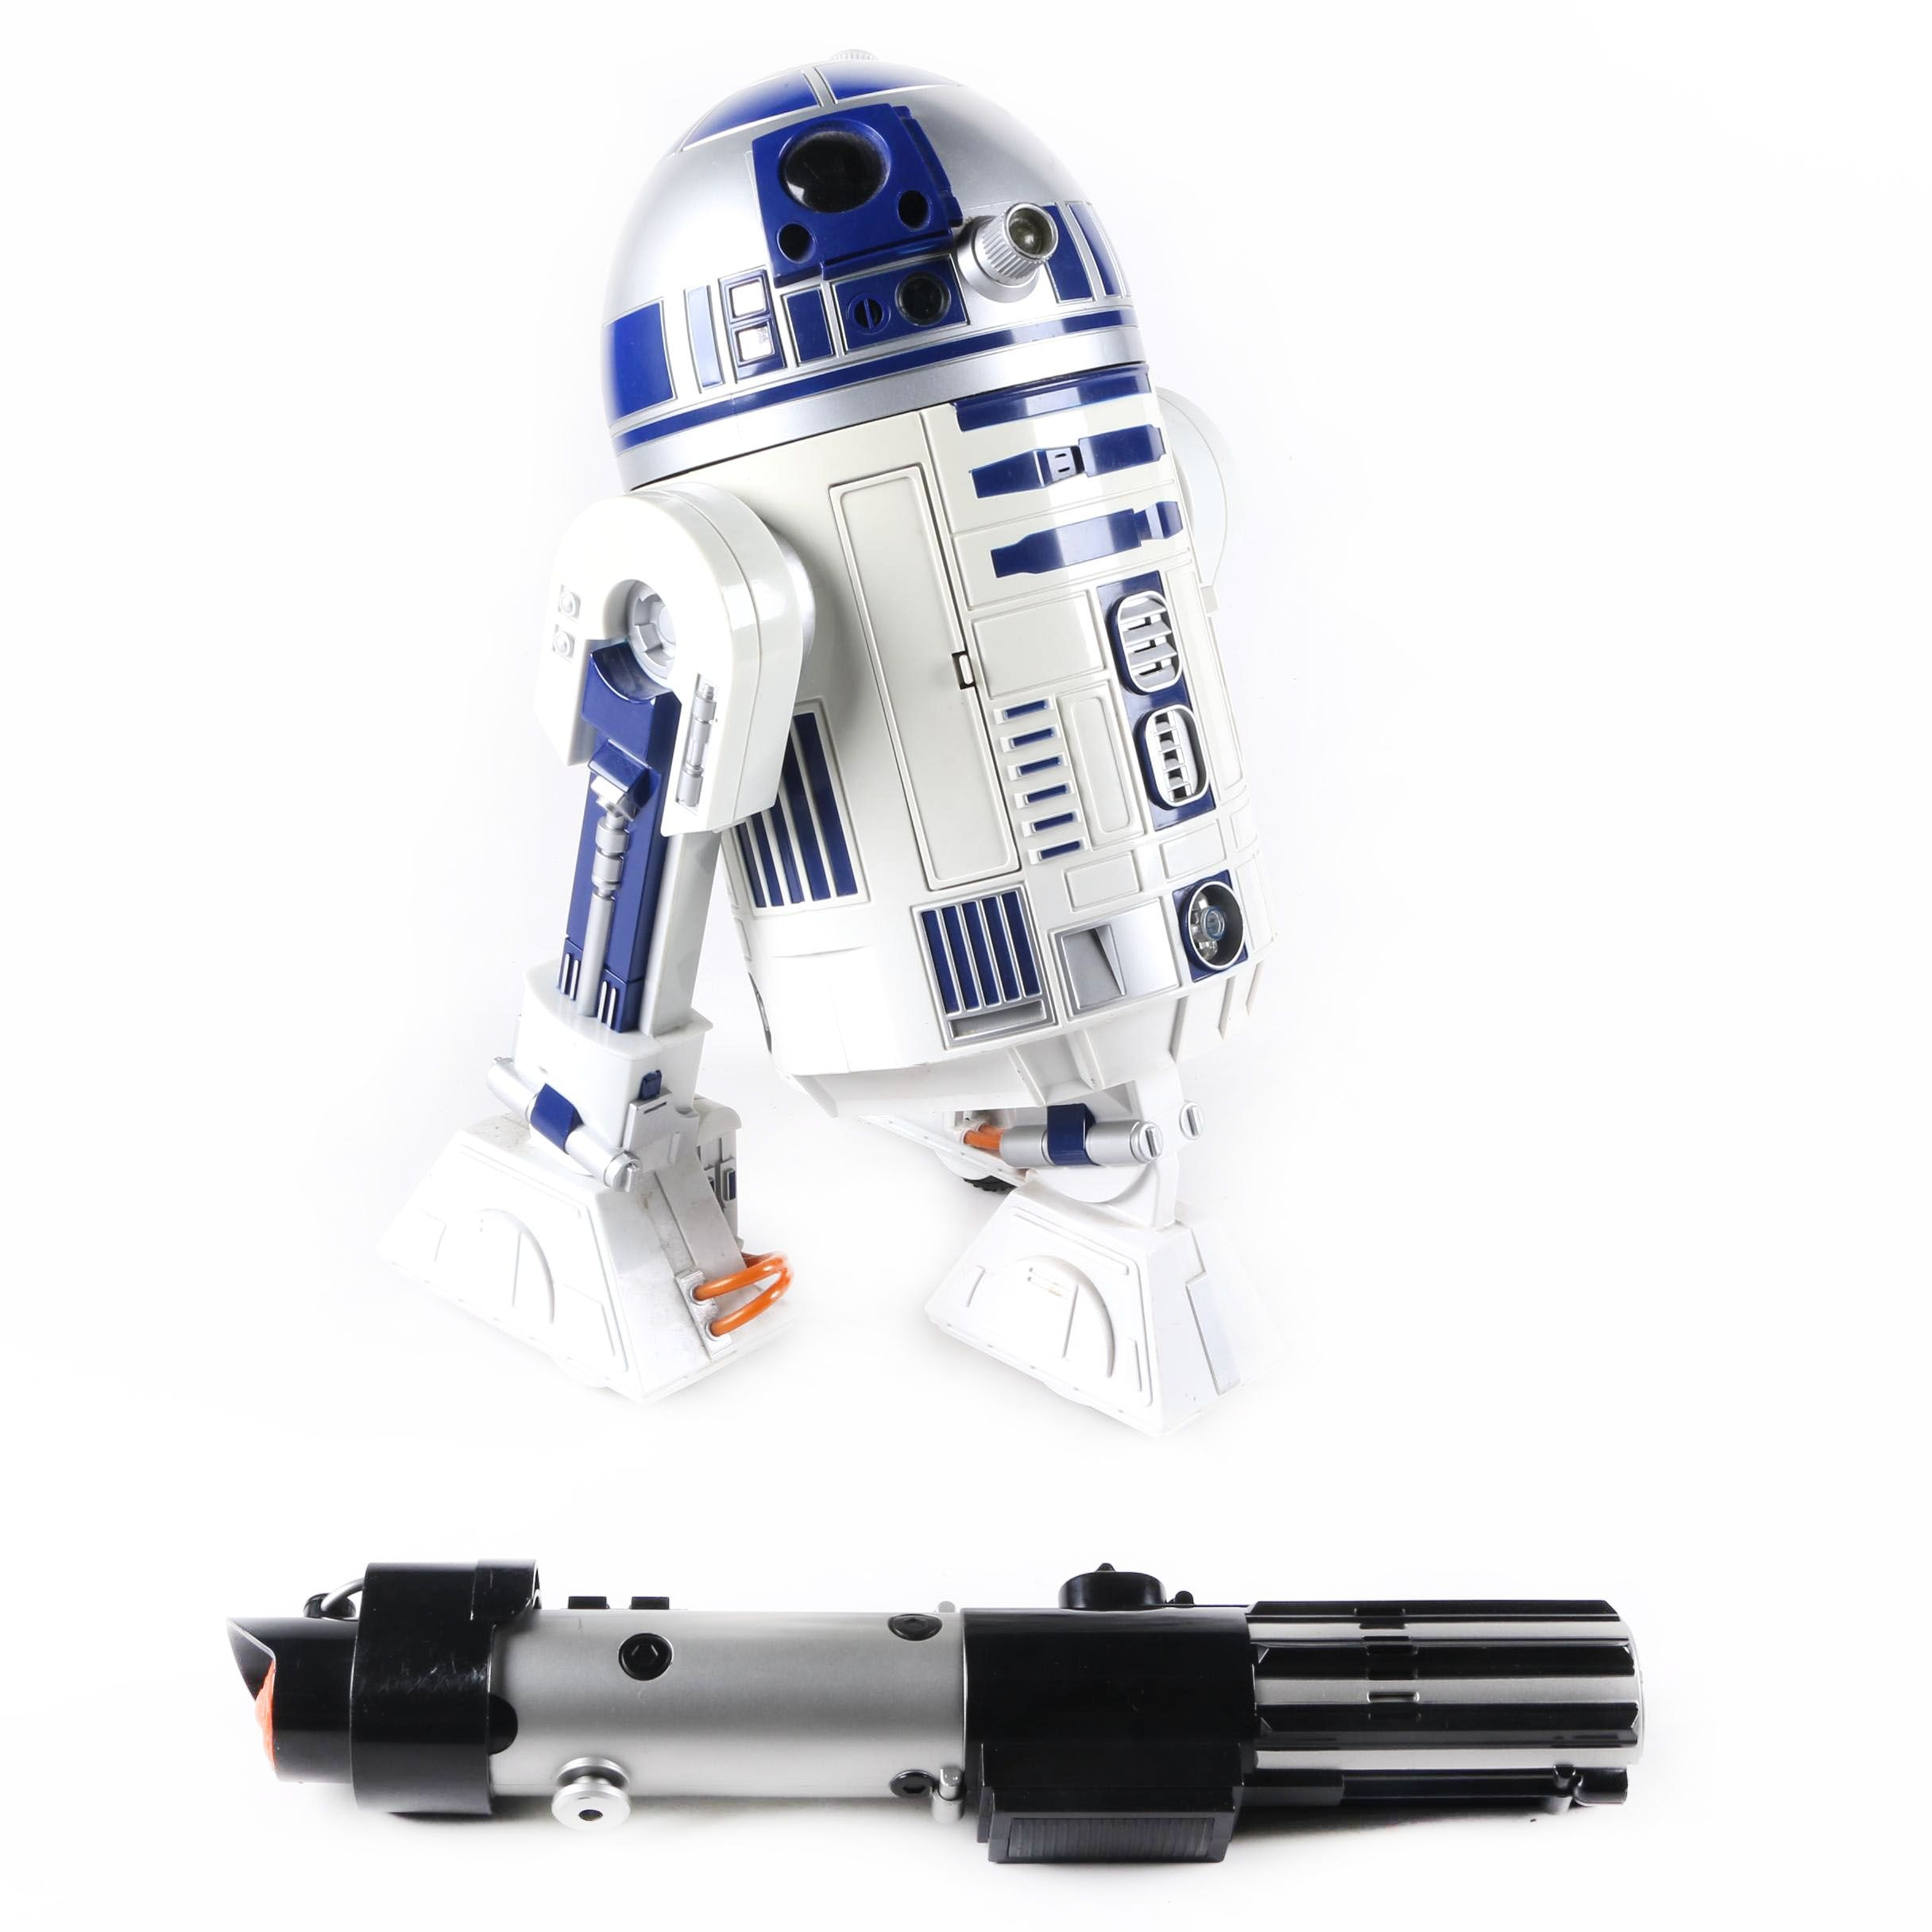 Remote Controlled R2-D2 and Darth Vader's Lightsaber Toys